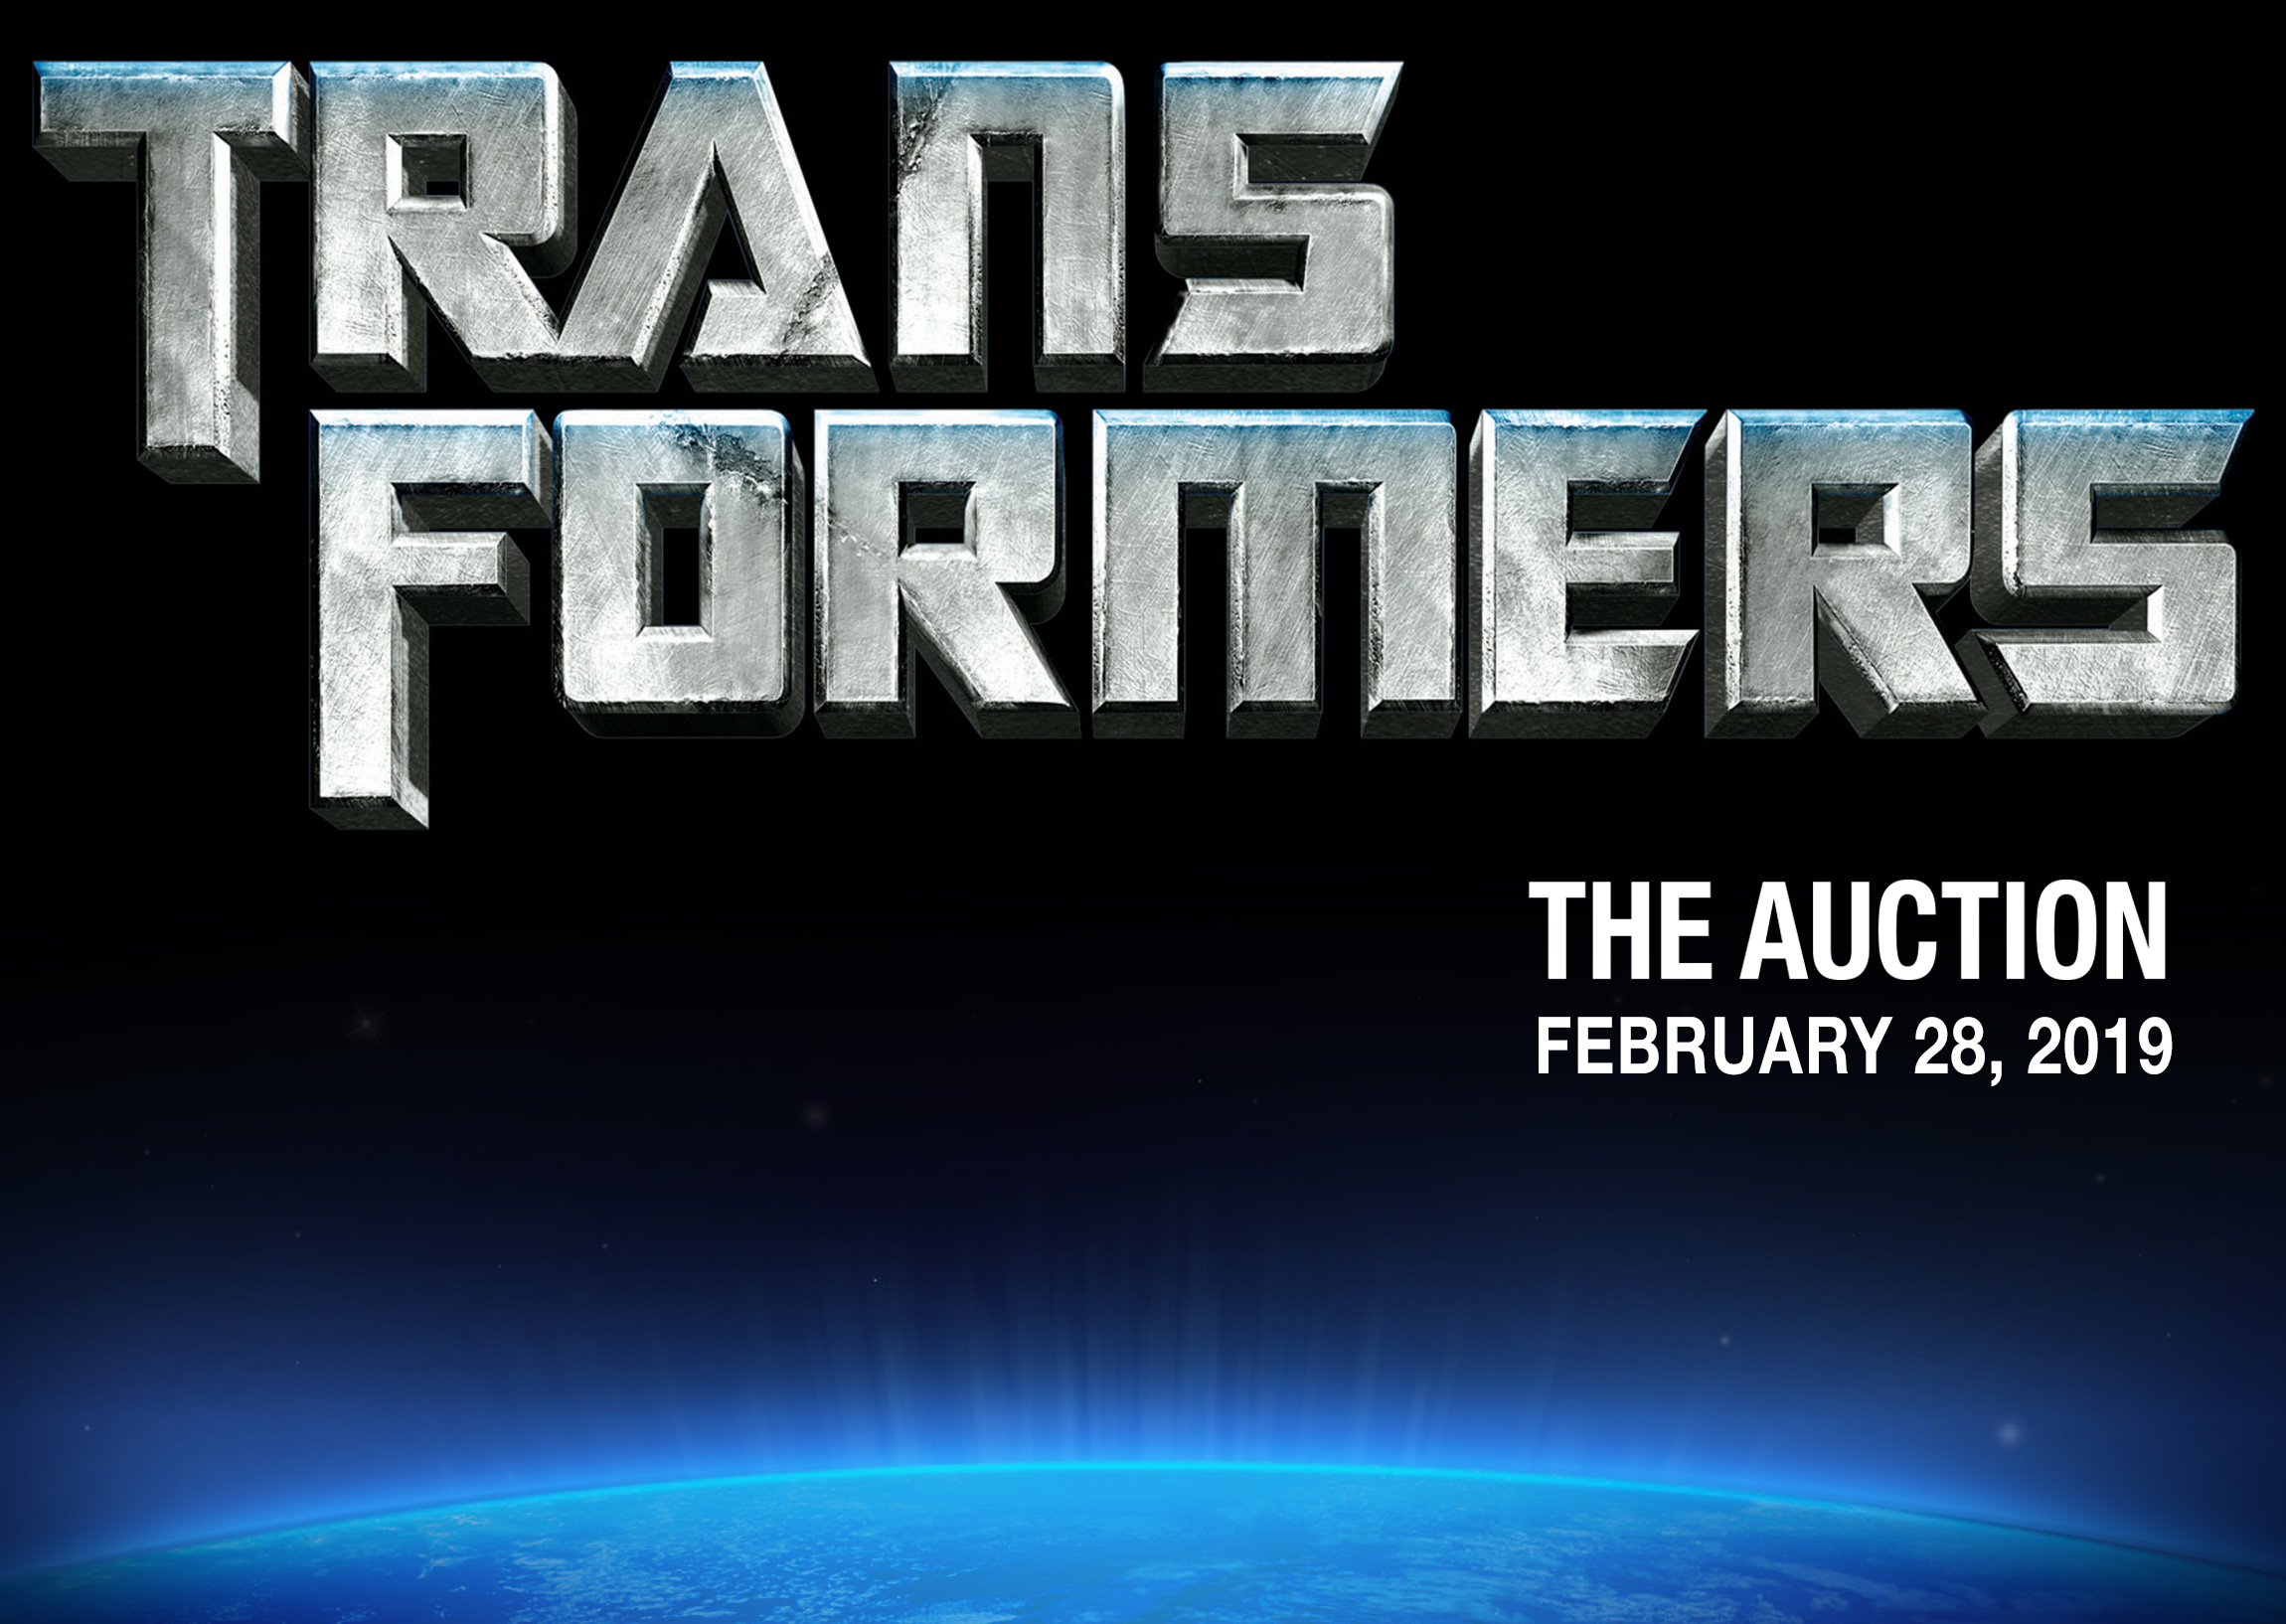 transformer movie poster with